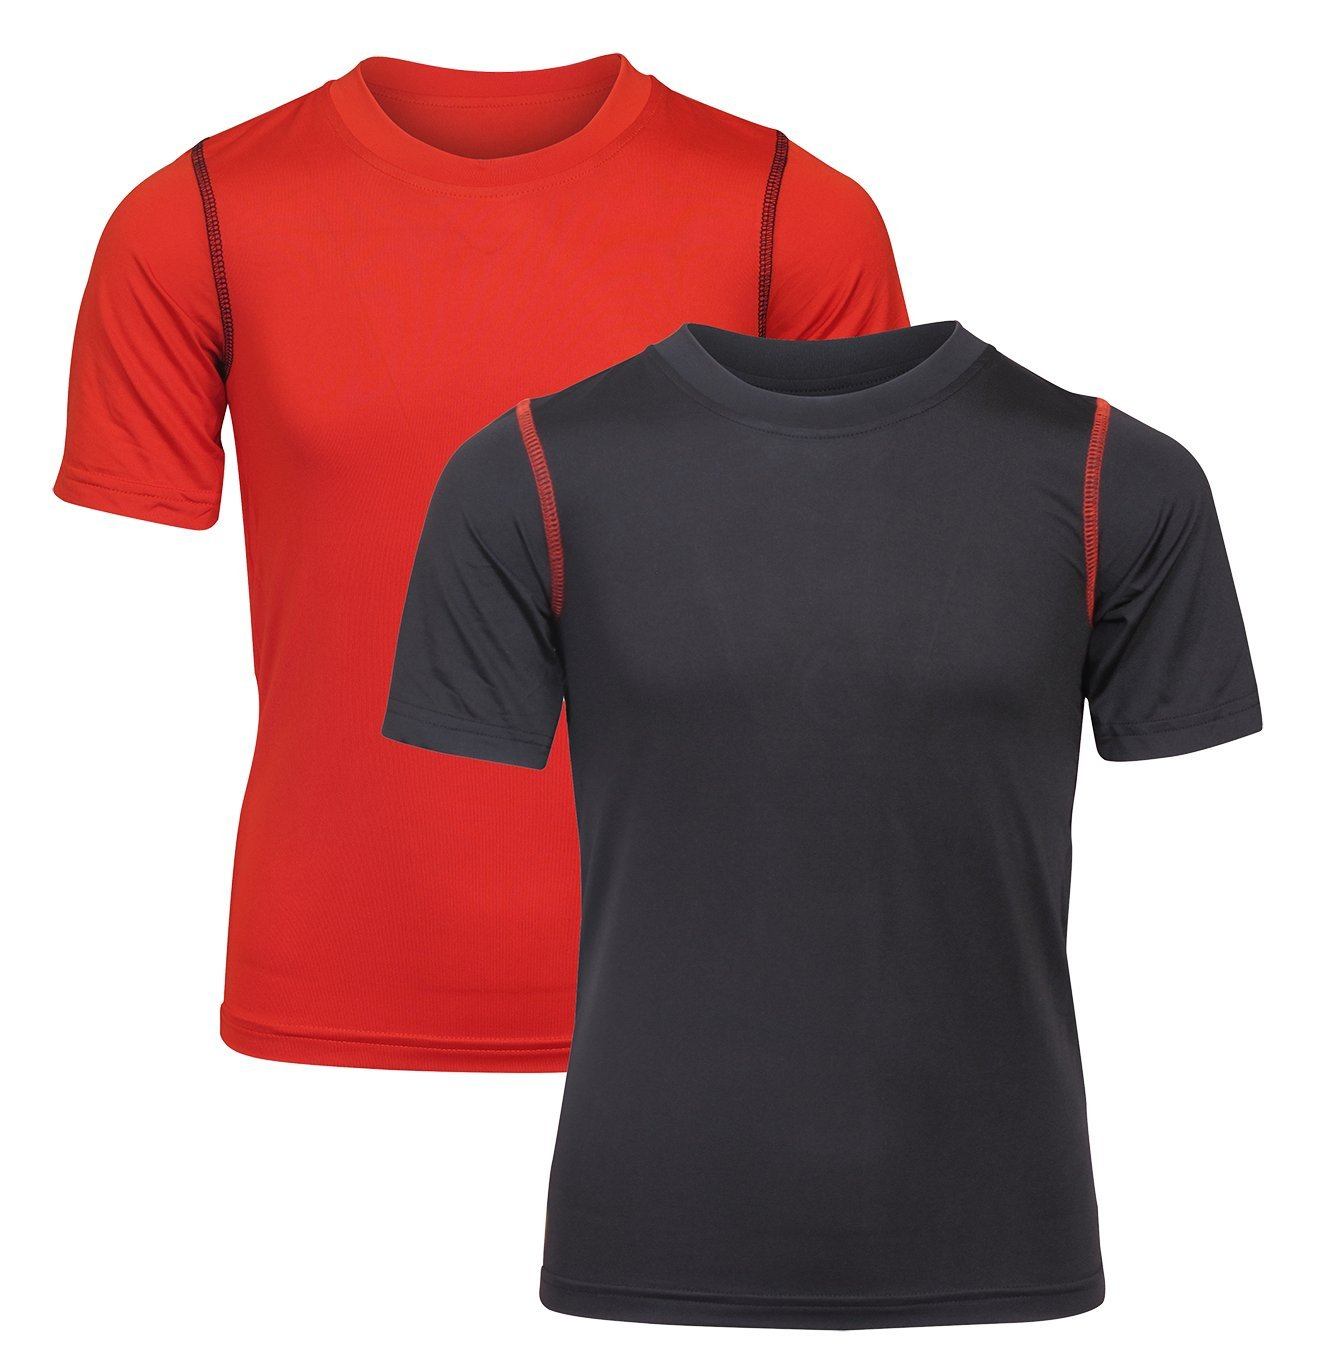 'Black Bear Boys' Performance Dry-Fit T-Shirts, Black and Red, Large / 12-14'